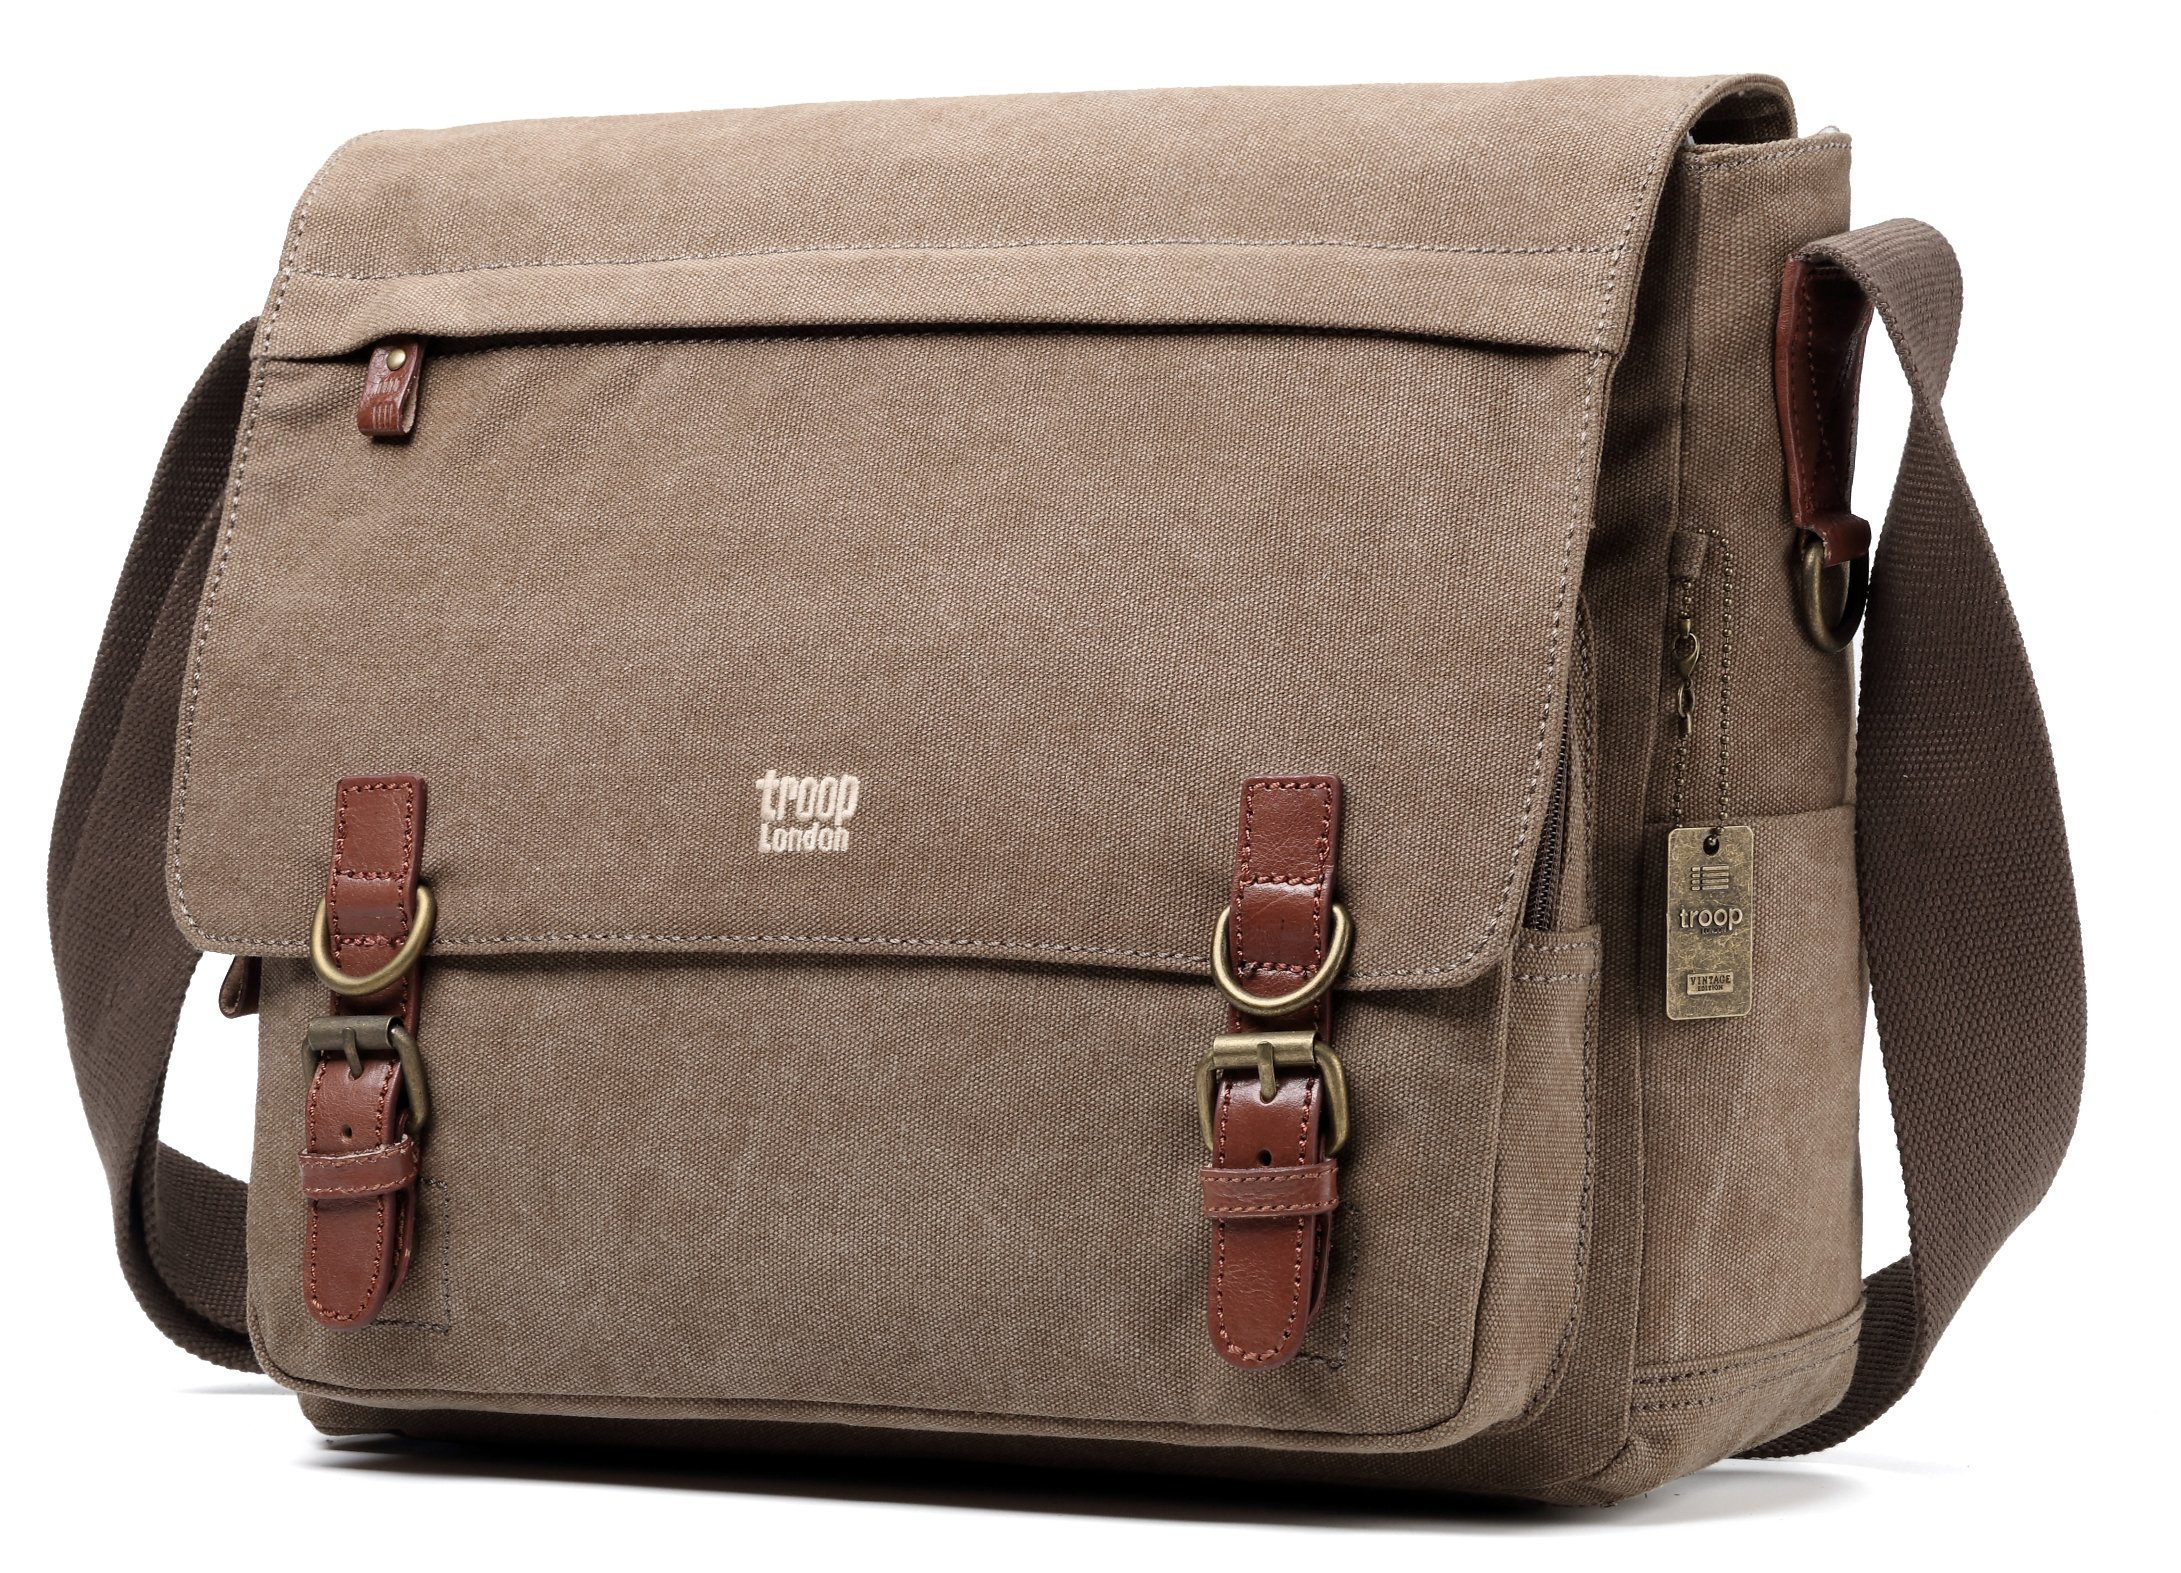 Troop London Canvas Messenger Bag Fits Up To 17 Inch Laptop Size Large TRP0207